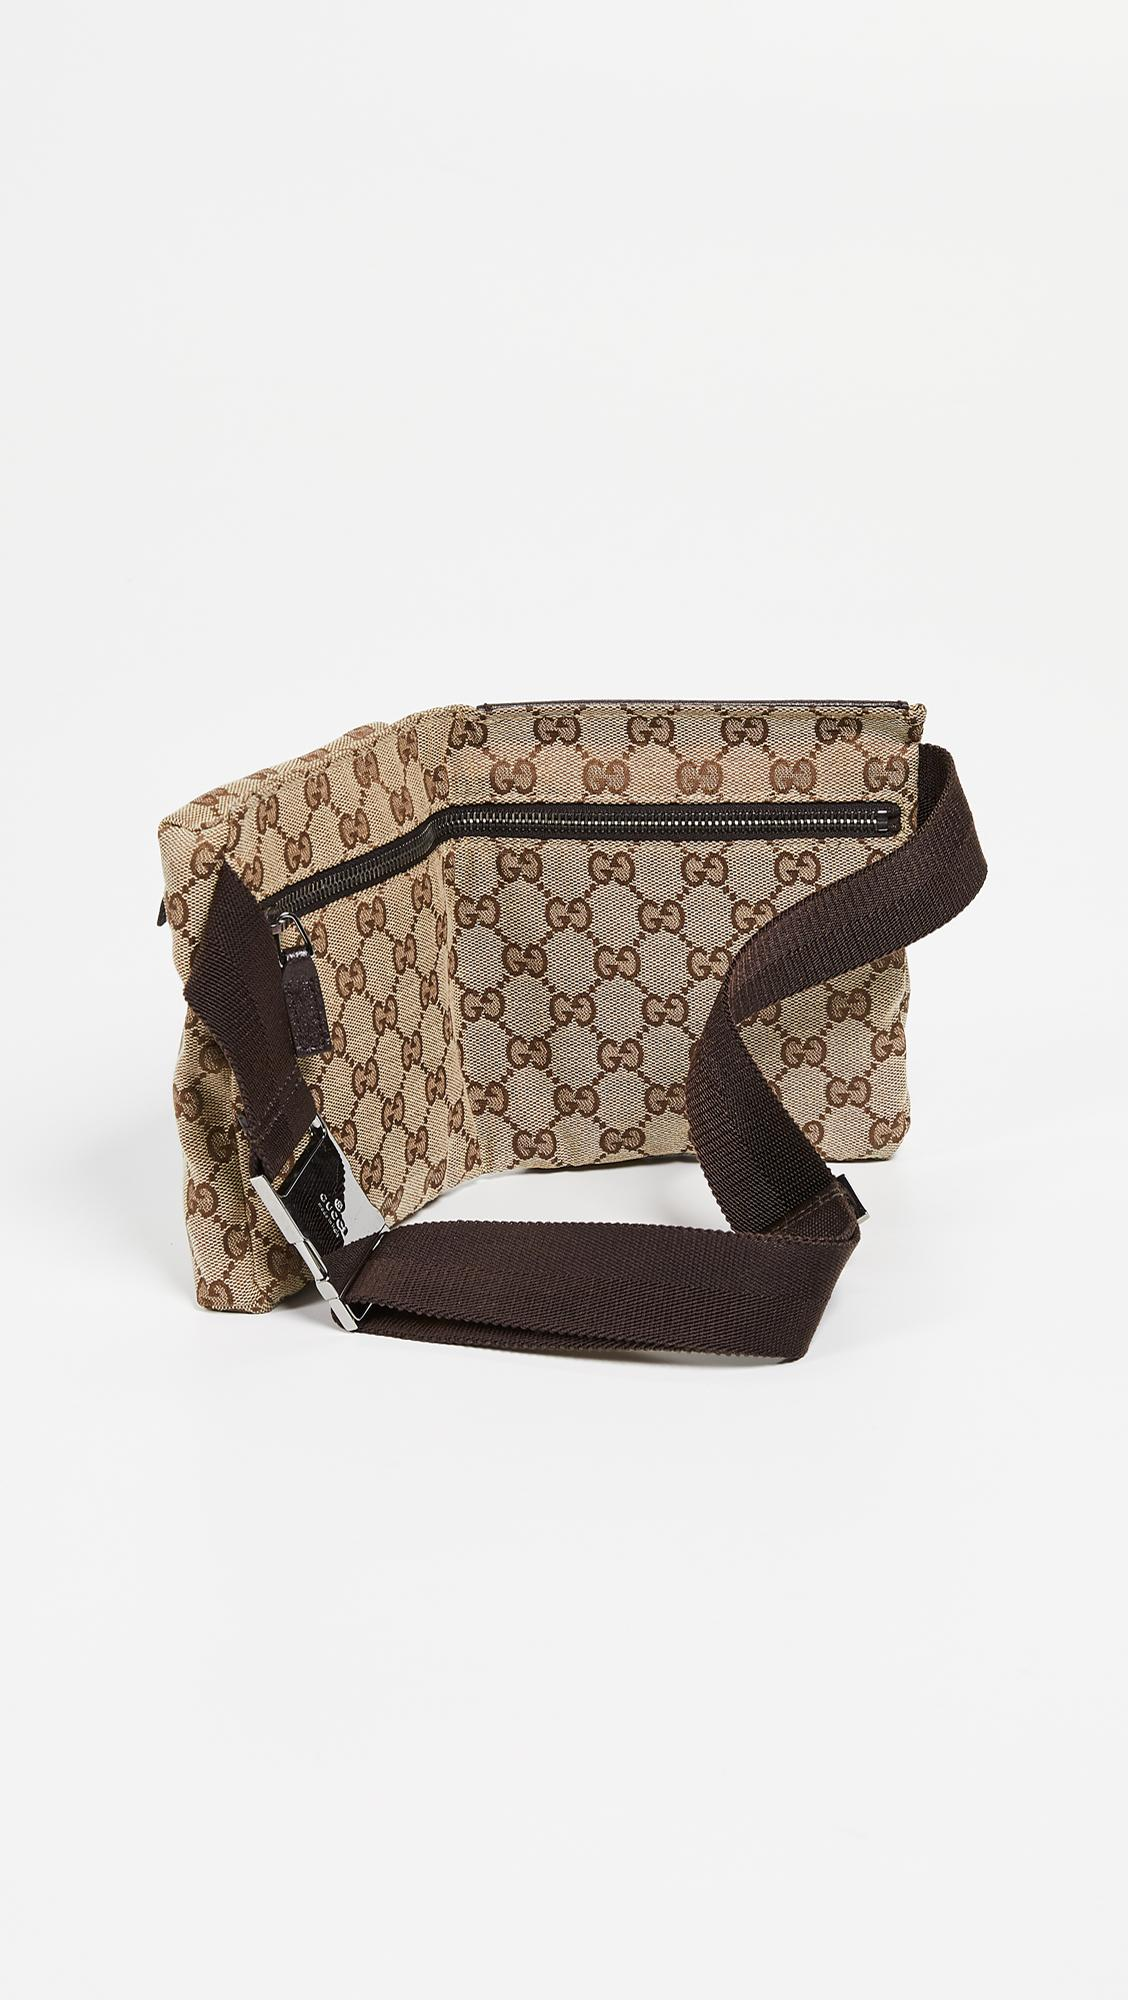 81635cc2d4c0 What Goes Around Comes Around - Gucci Brown Coated Canvas Waist Pouch -  Lyst. View fullscreen